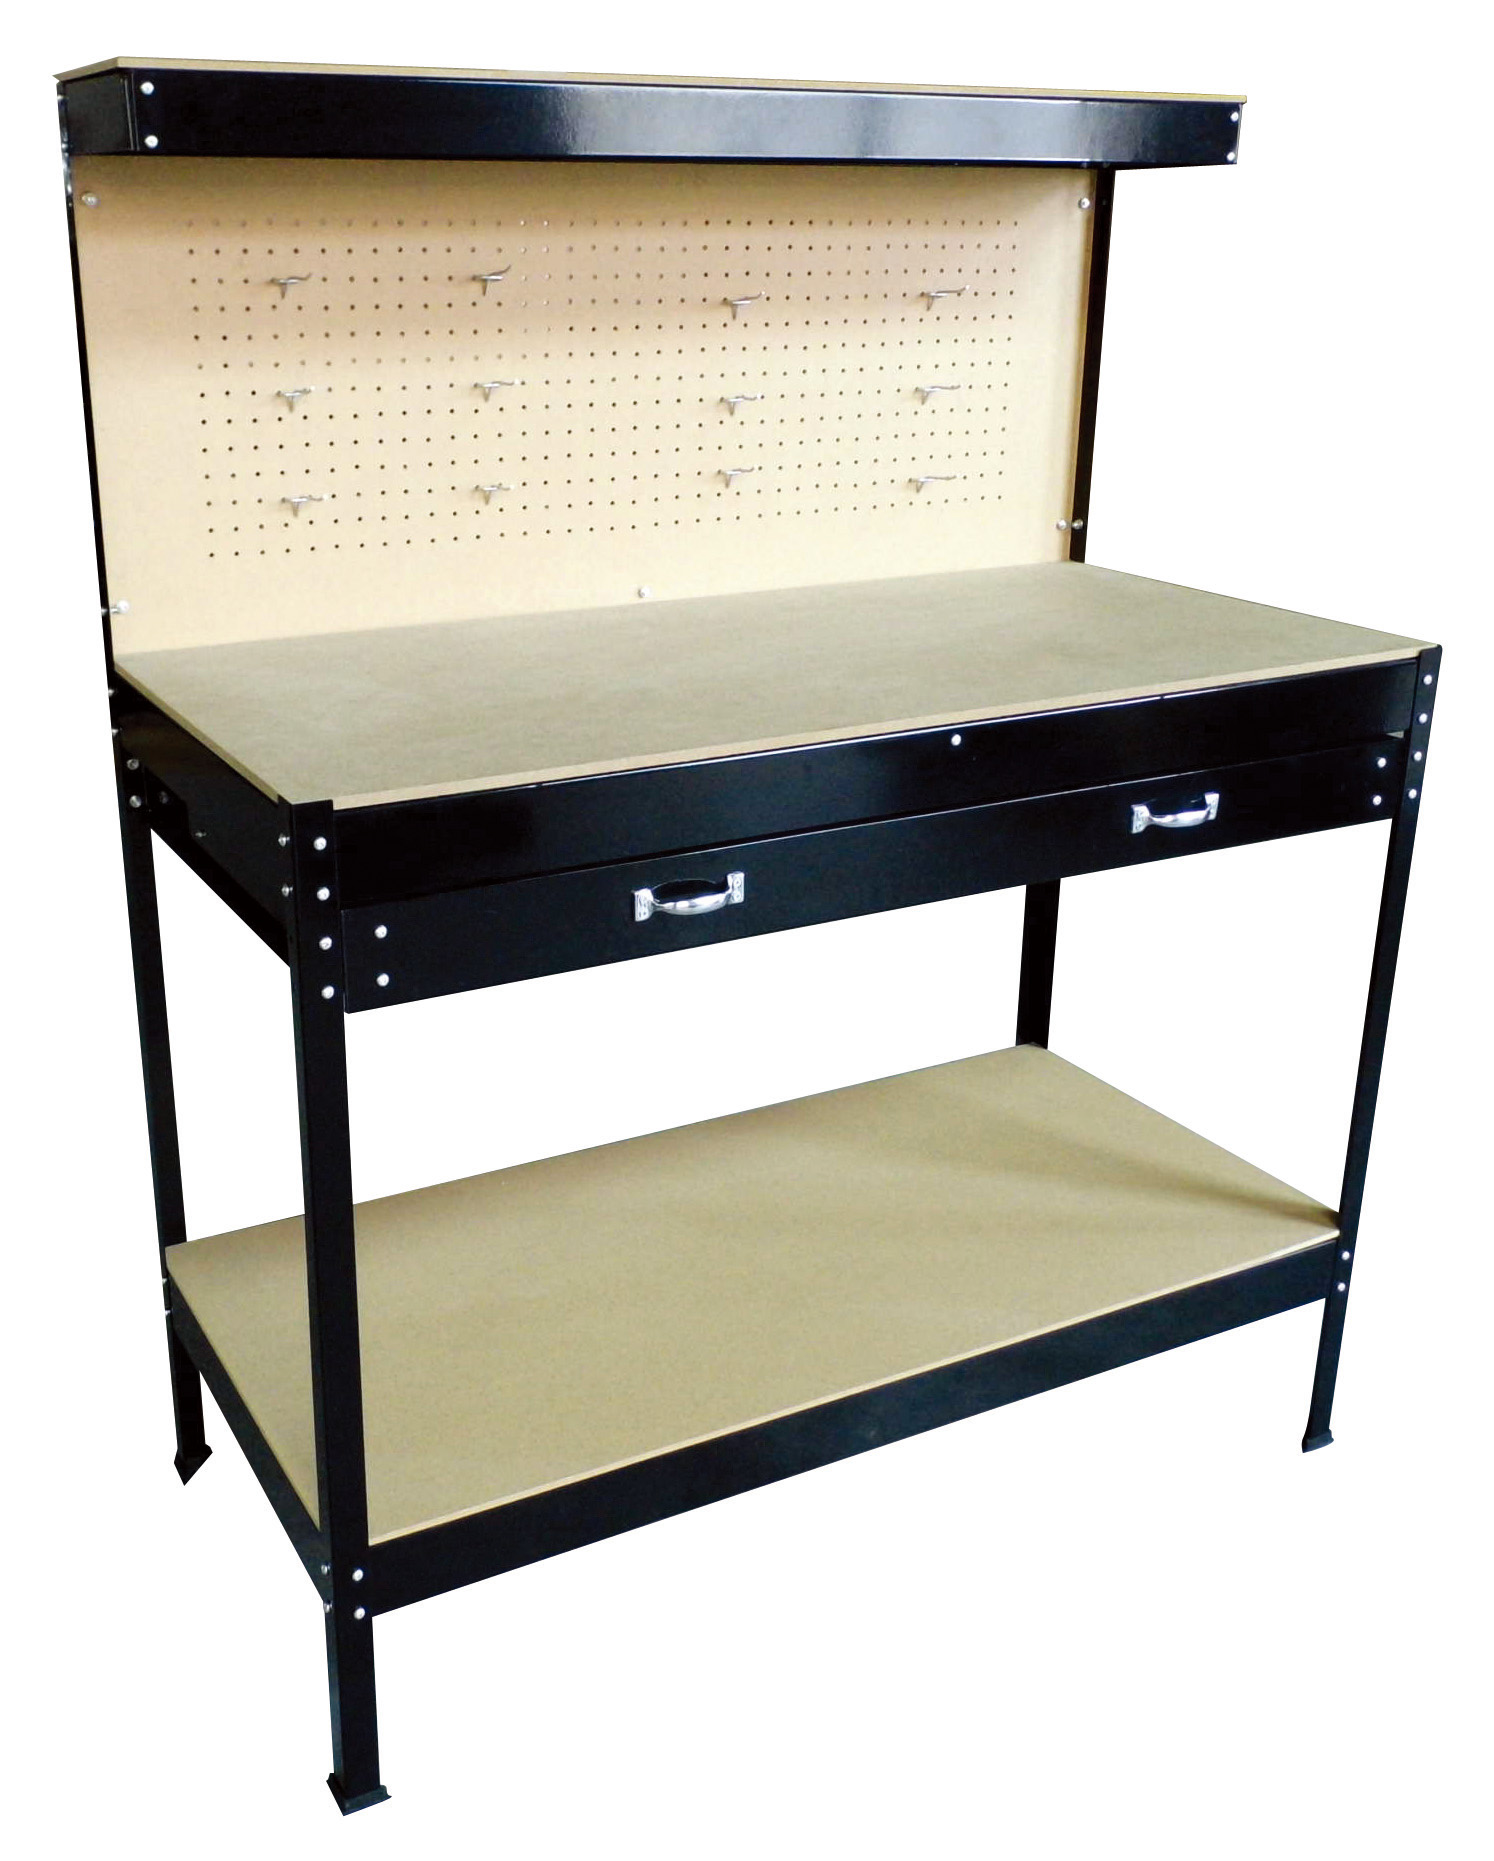 New Black Steel Garage Home Workshop Workbench Tool Box With Pegboard Drawers Ebay